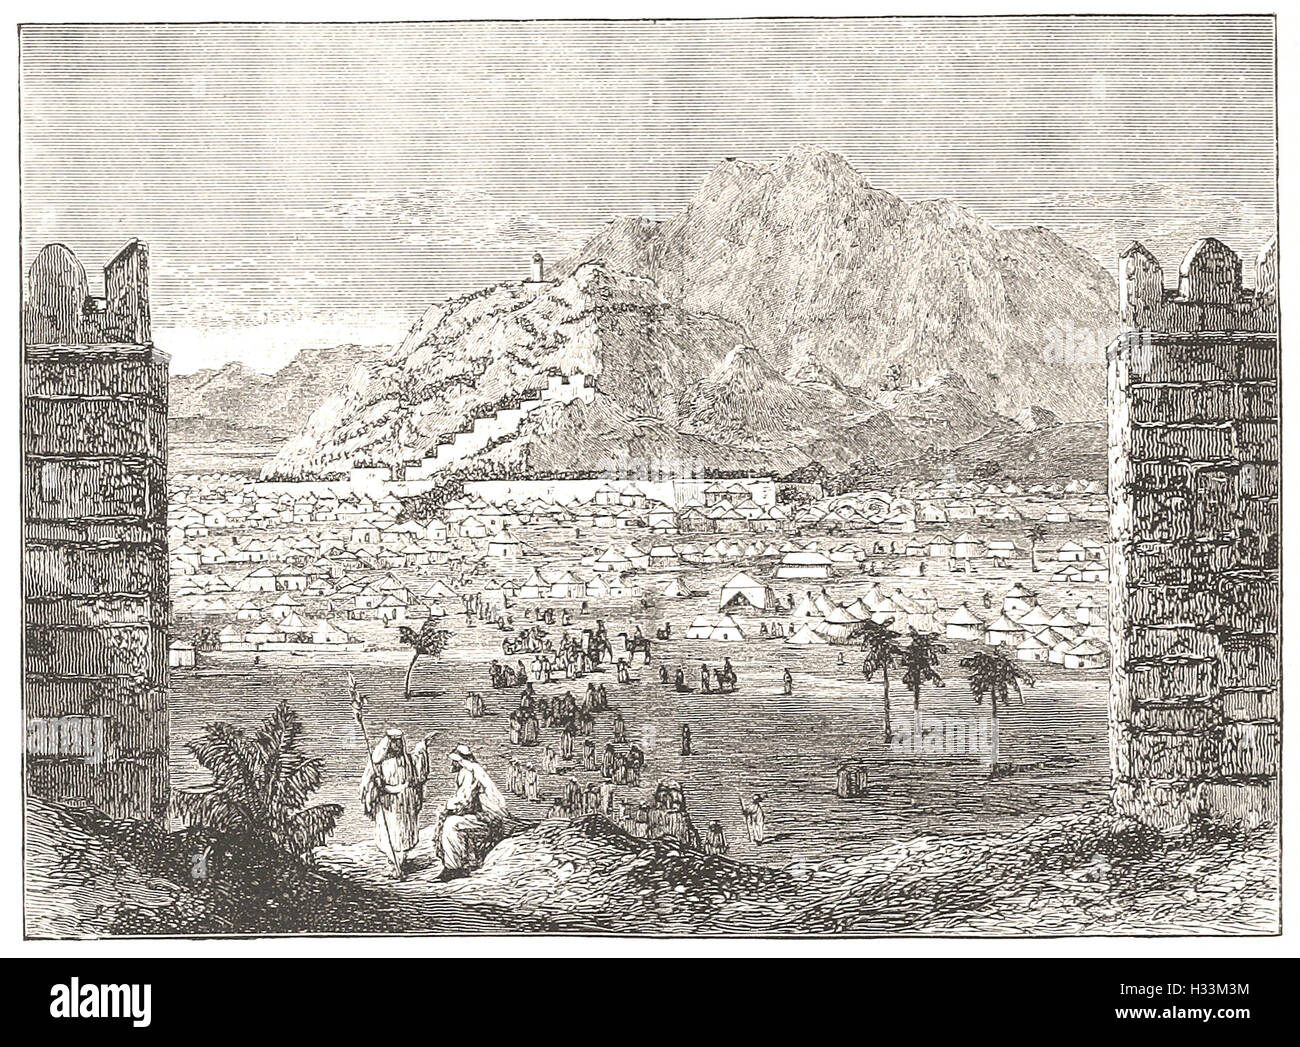 MOUNT ARAFAT, NEAR MECCA - from 'Cassell's Illustrated Universal History' - 1882 - Stock Image